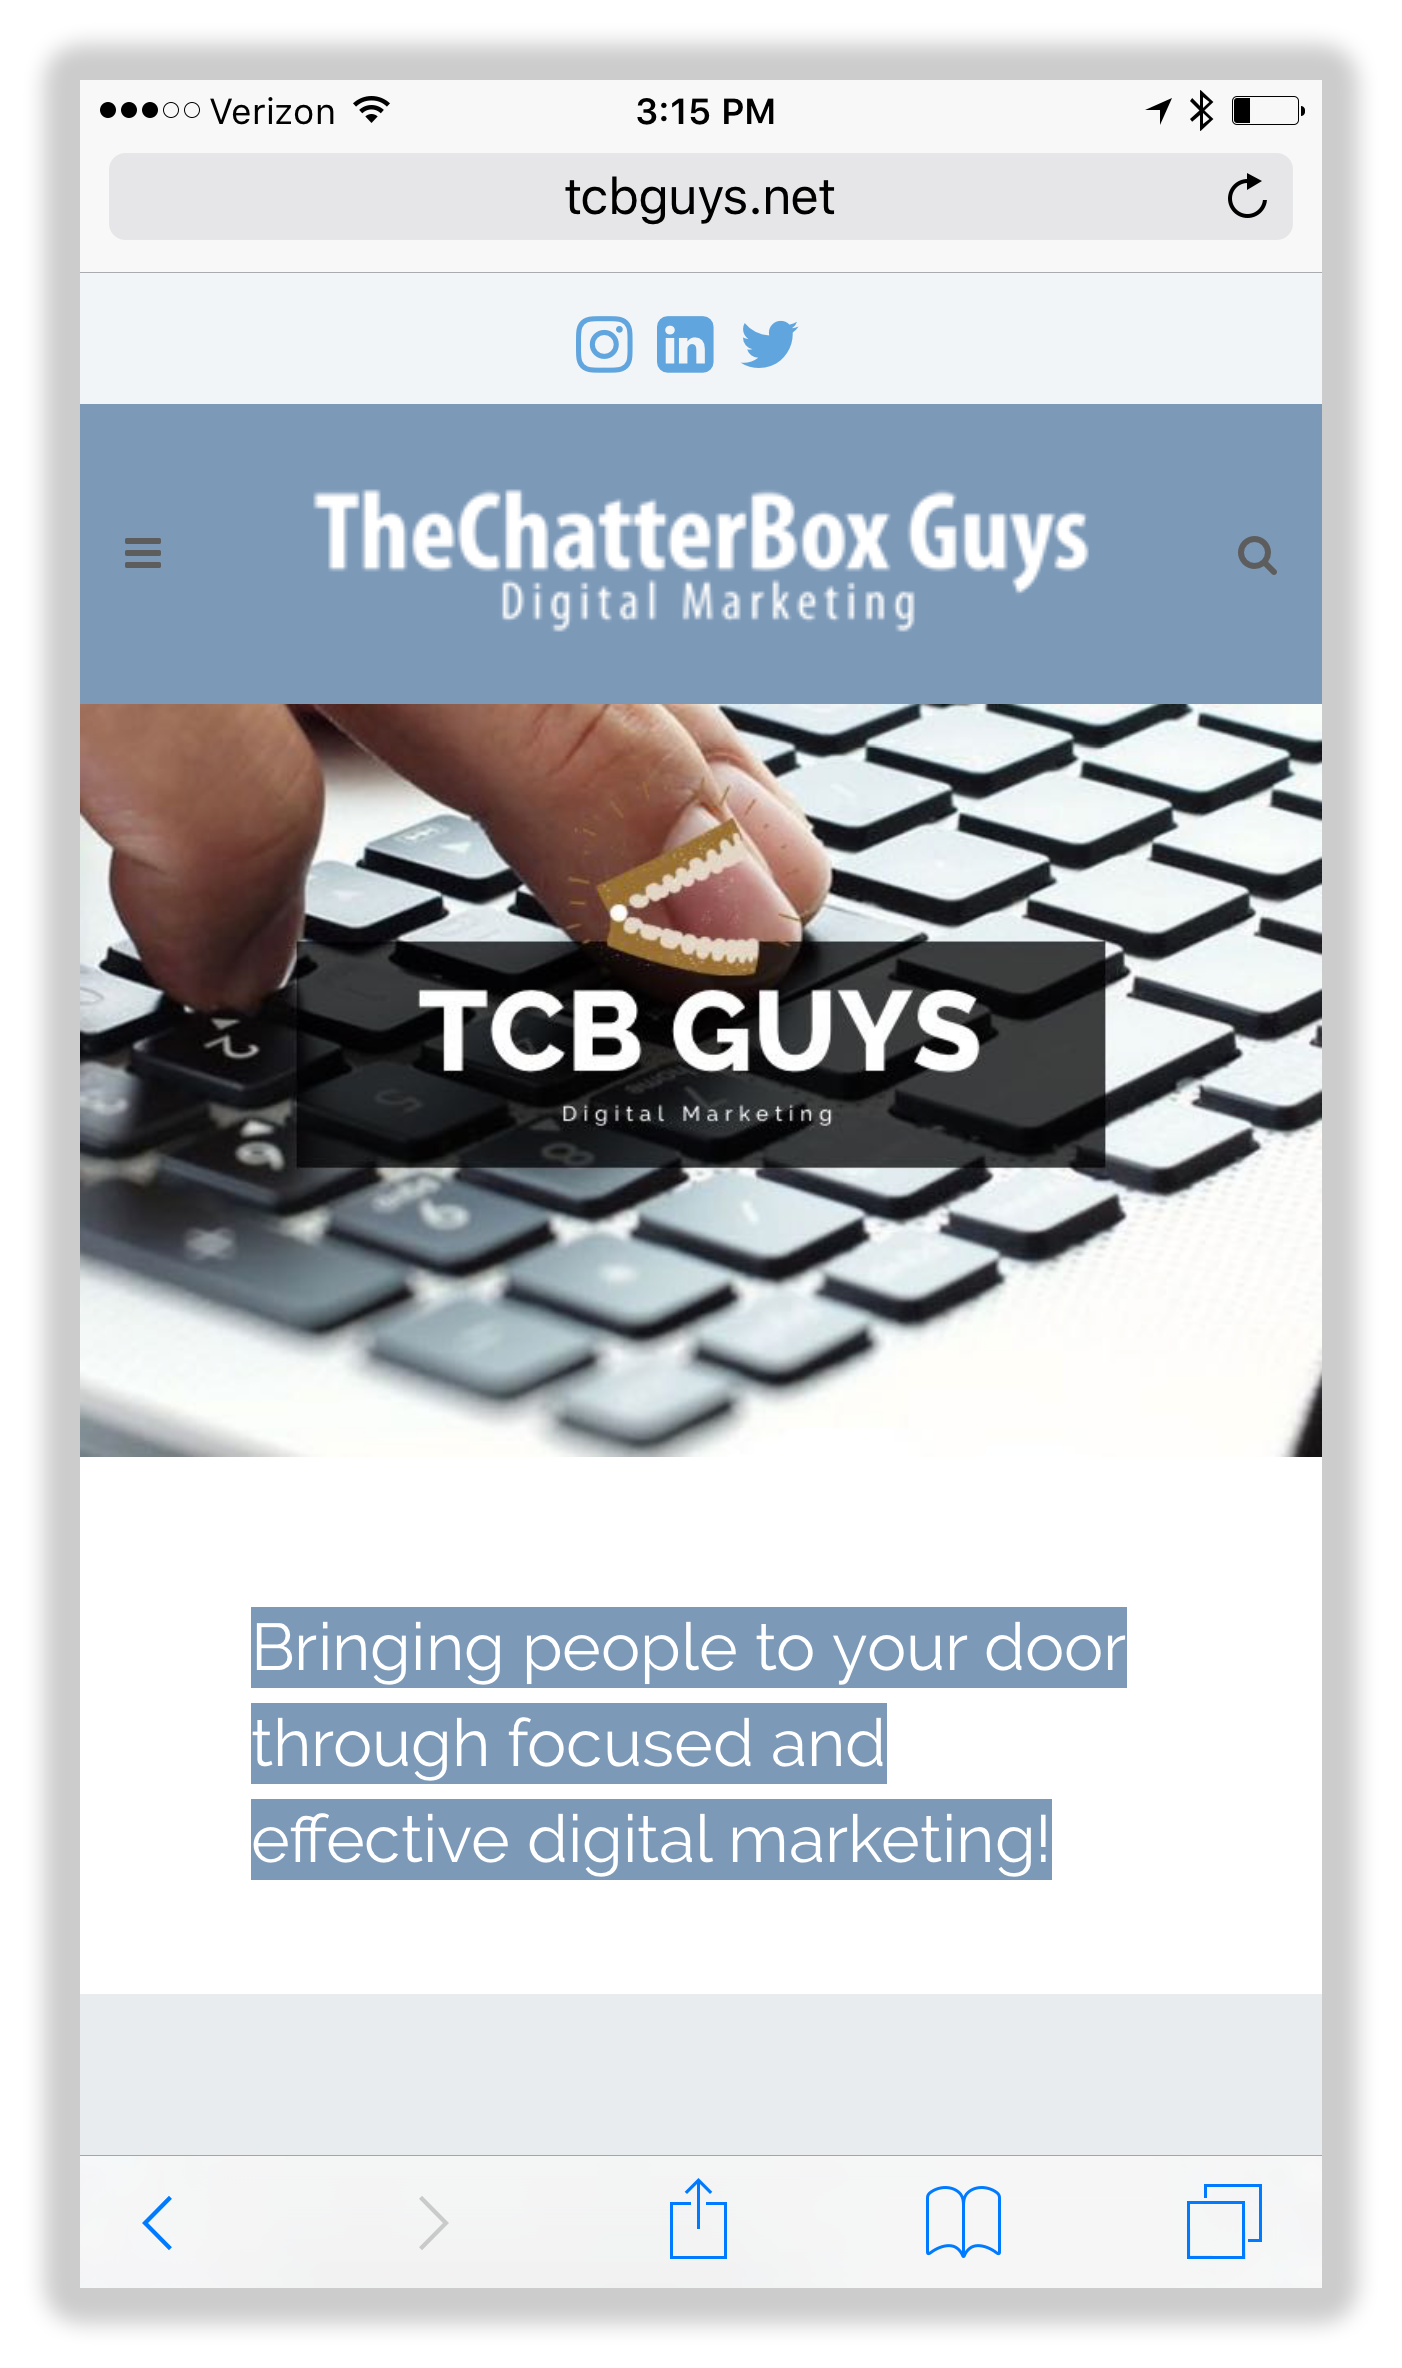 Mobile Web Design: TheChatterBox Guys